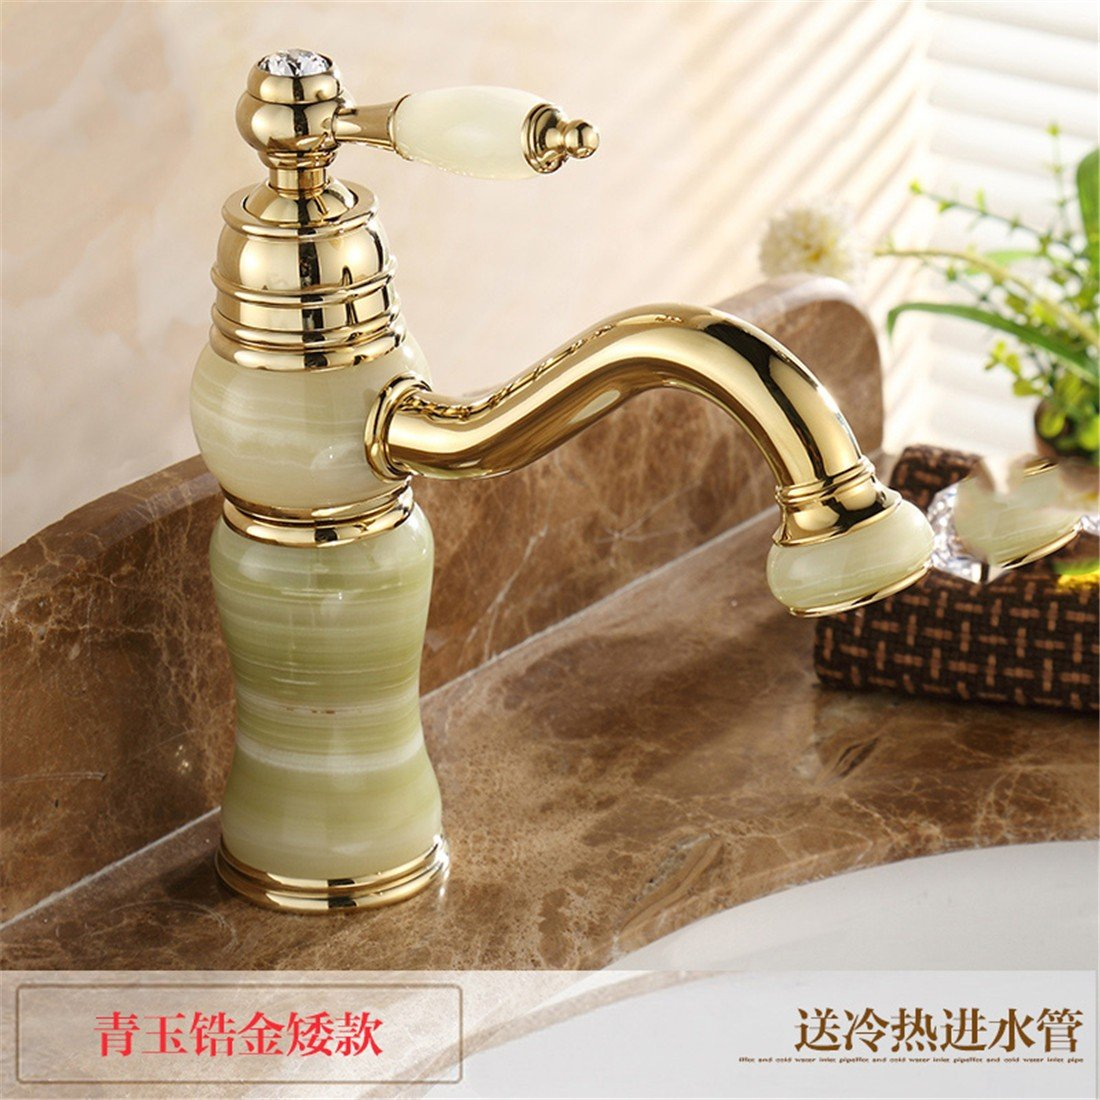 2 LHbox Basin Mixer Tap Bathroom Sink Faucet Po Lo bathroom European Natural Jade Fine Copper pink gold bathroom sink hot and cold can redate the faucet, white jade ORB color low)